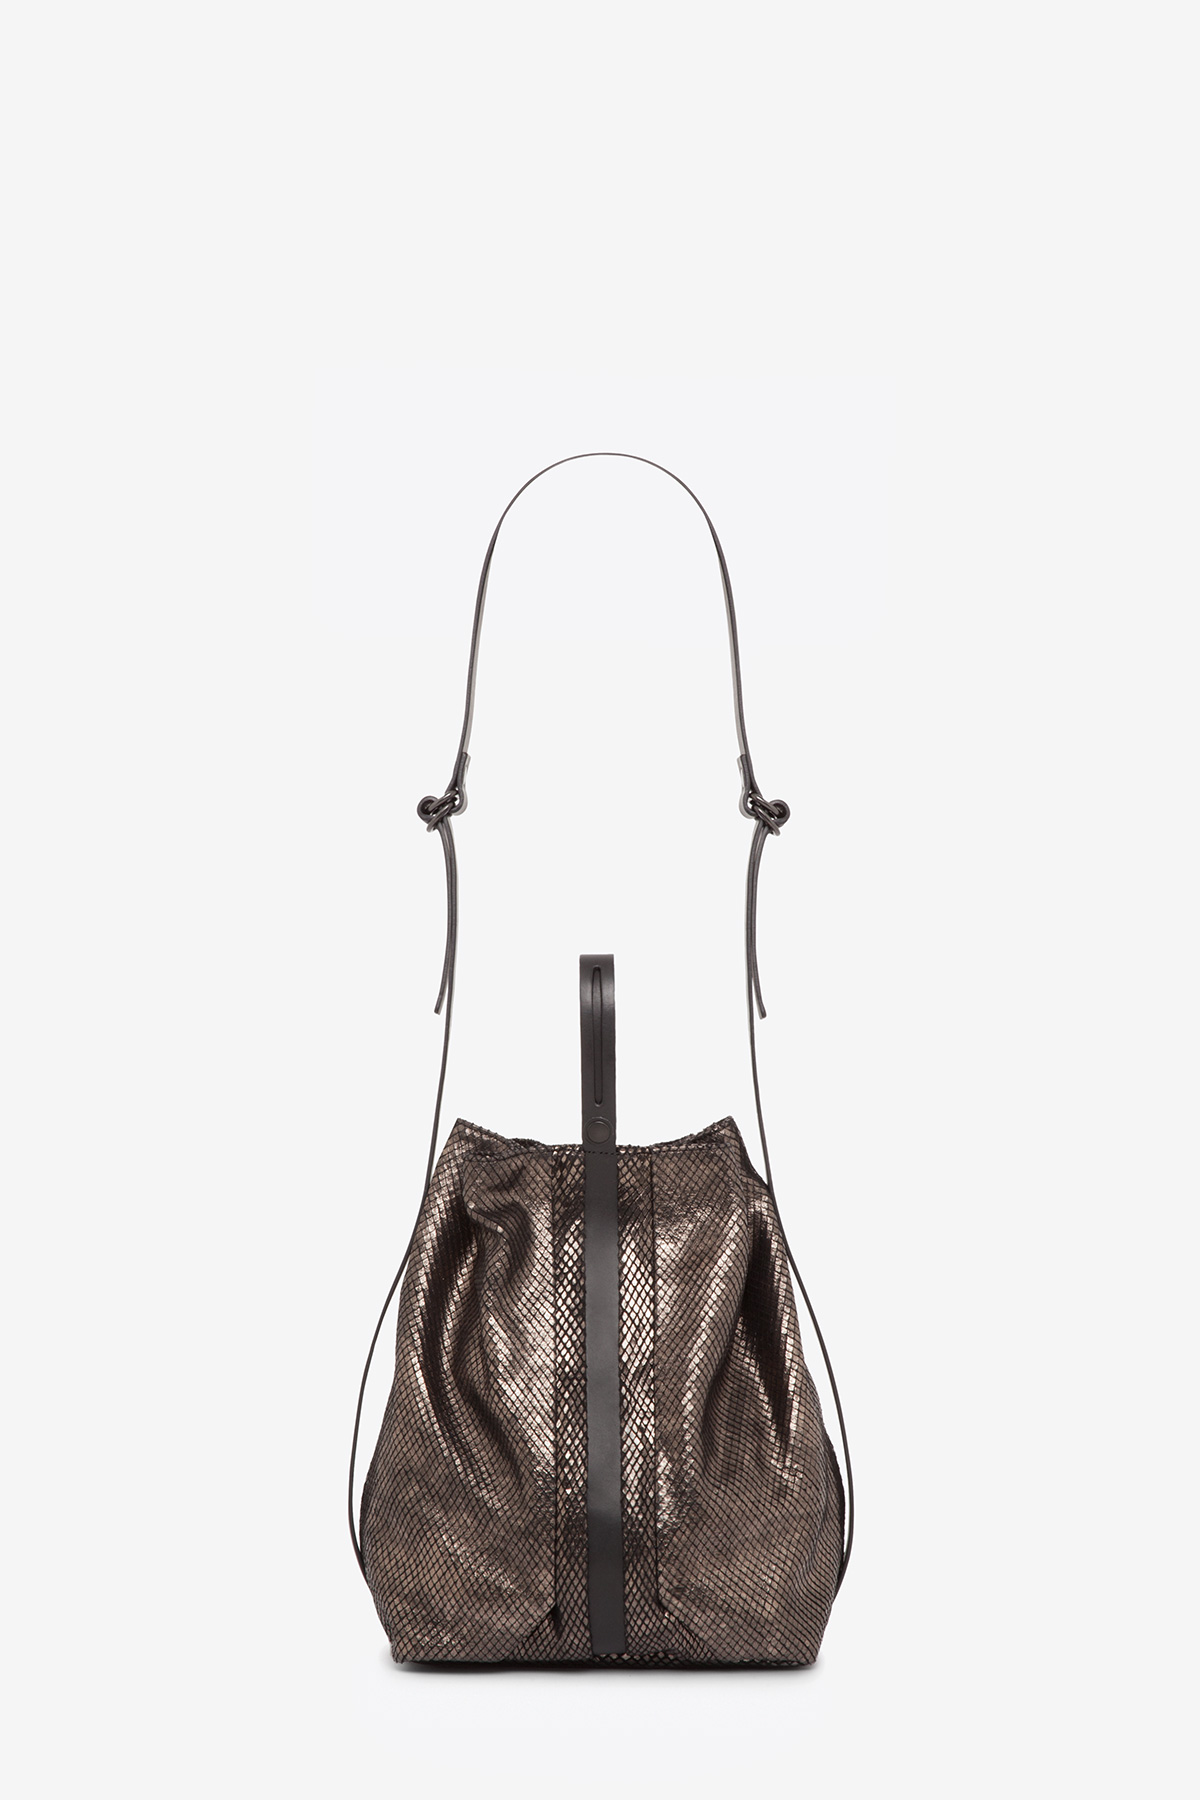 dclr010-bucketbag-a24-backsnakebronze-back